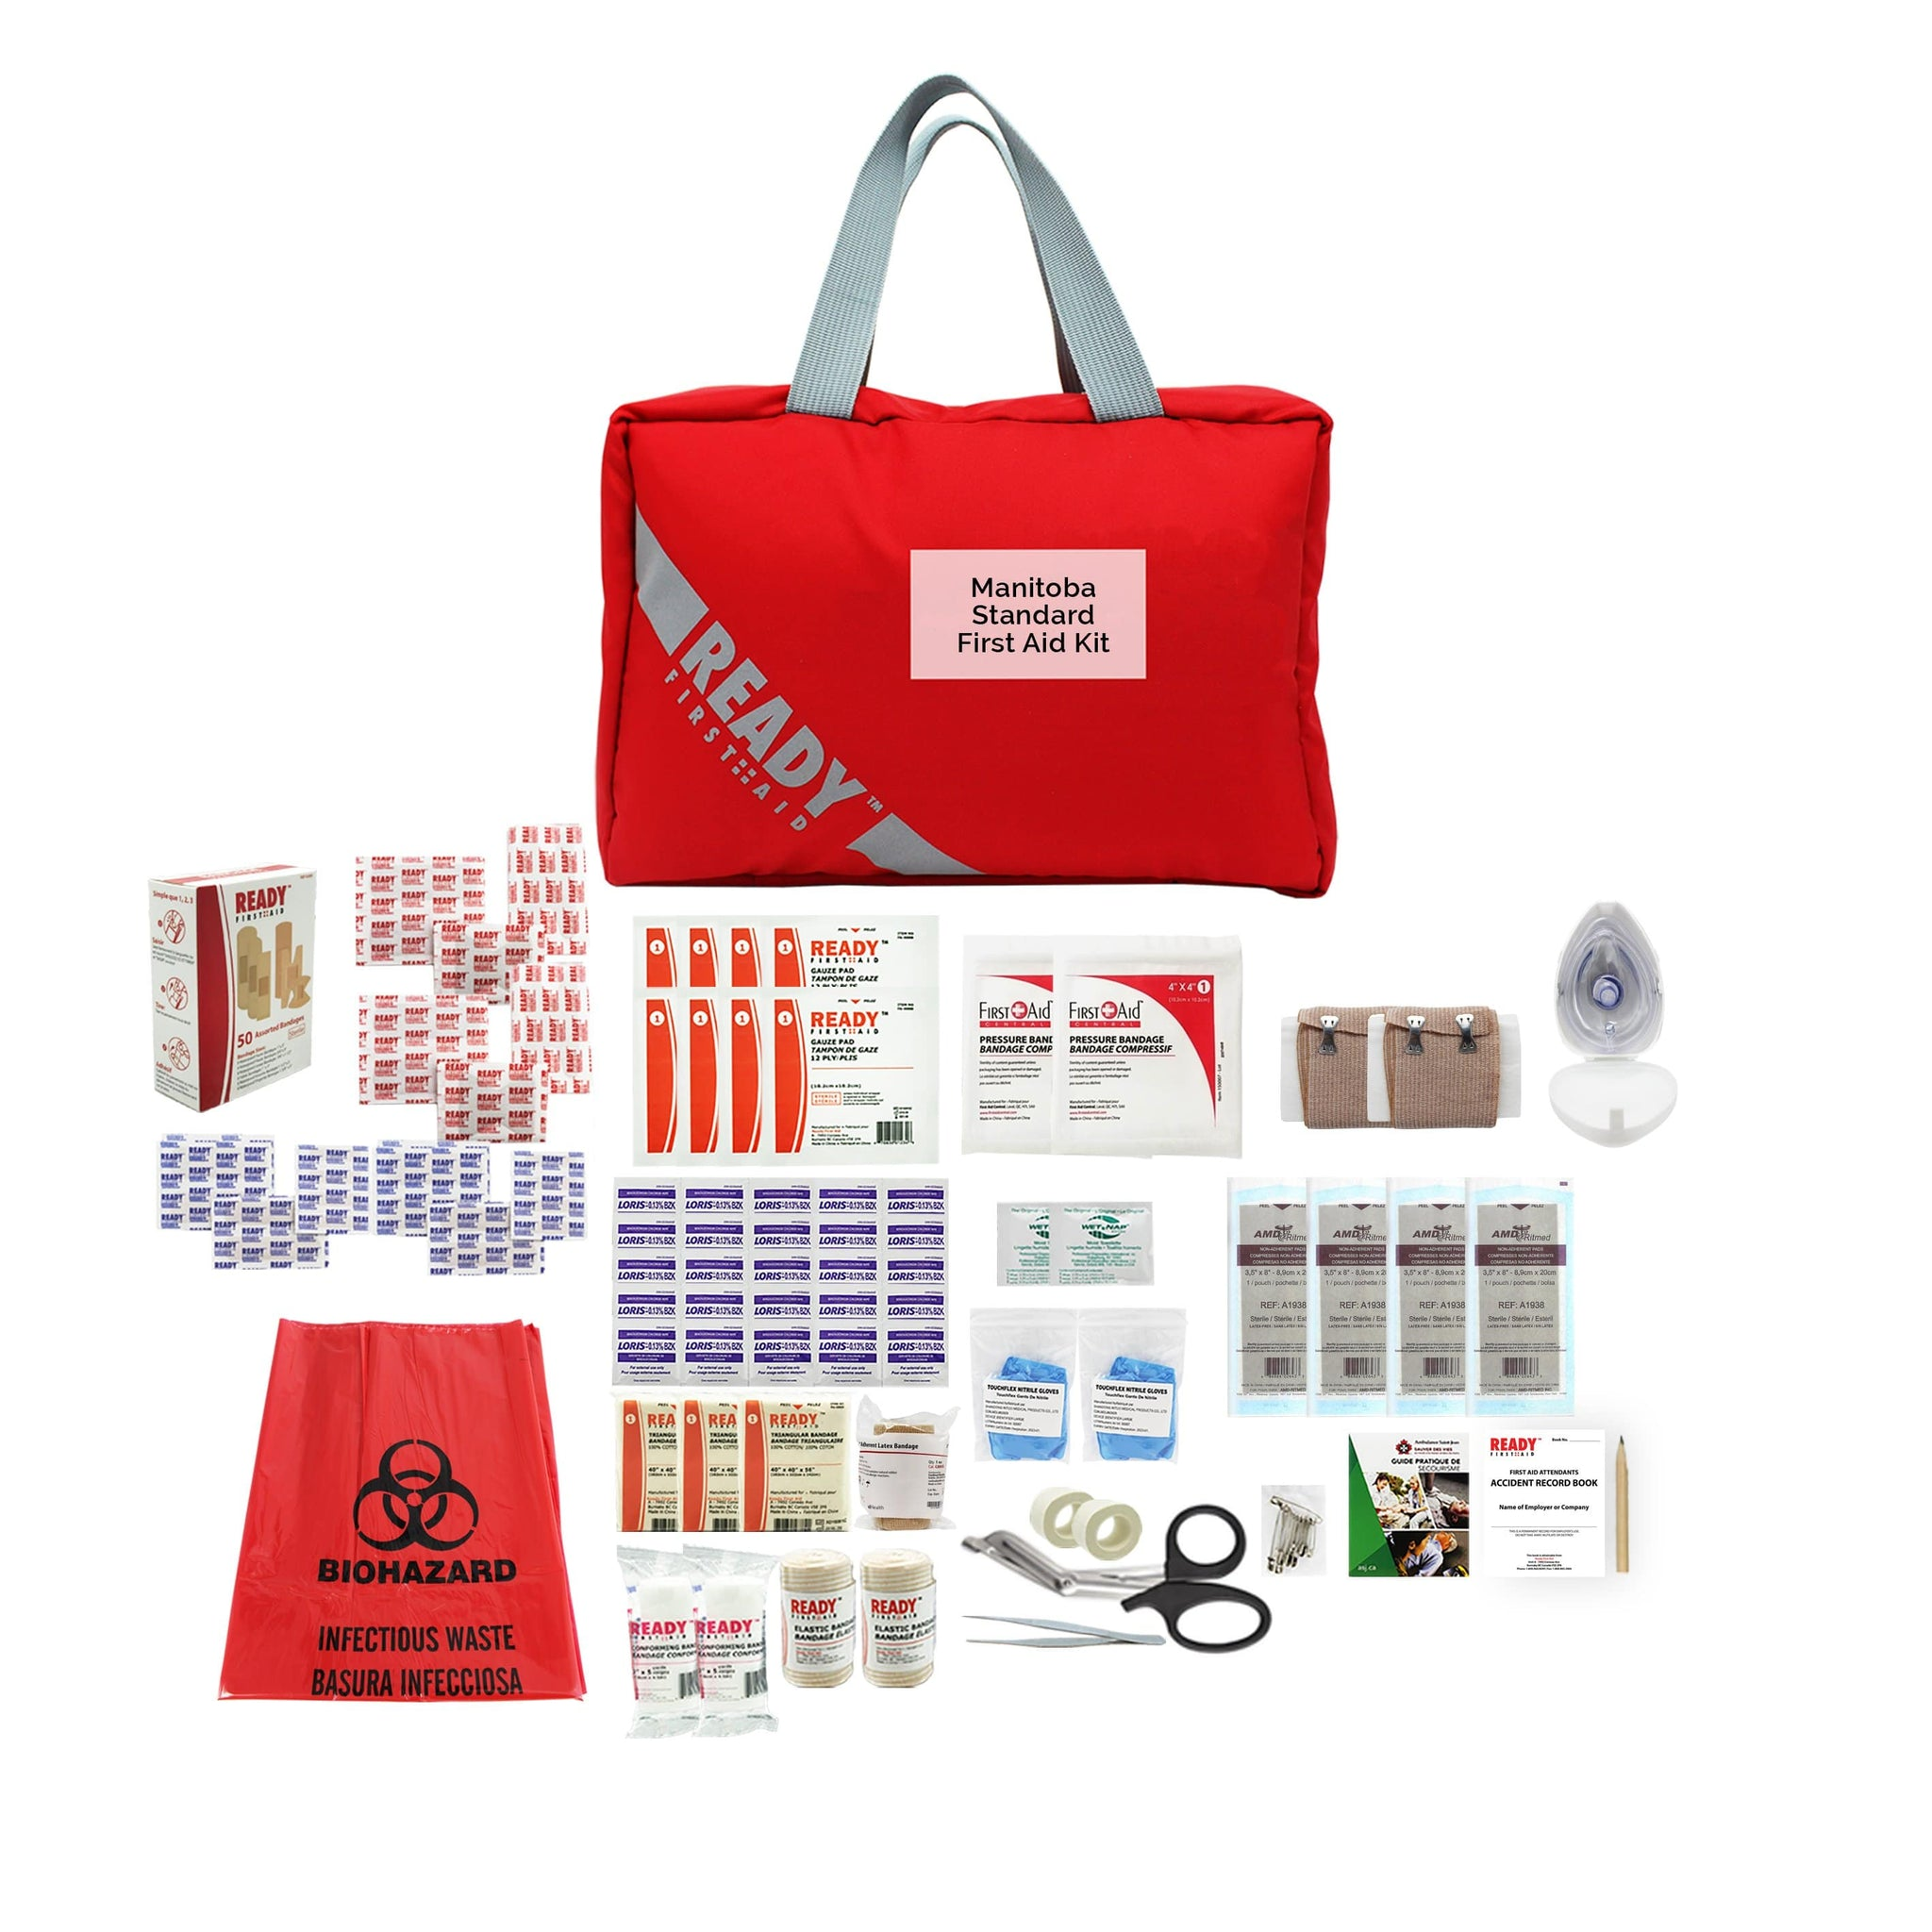 Manitoba Standard First Aid Kit